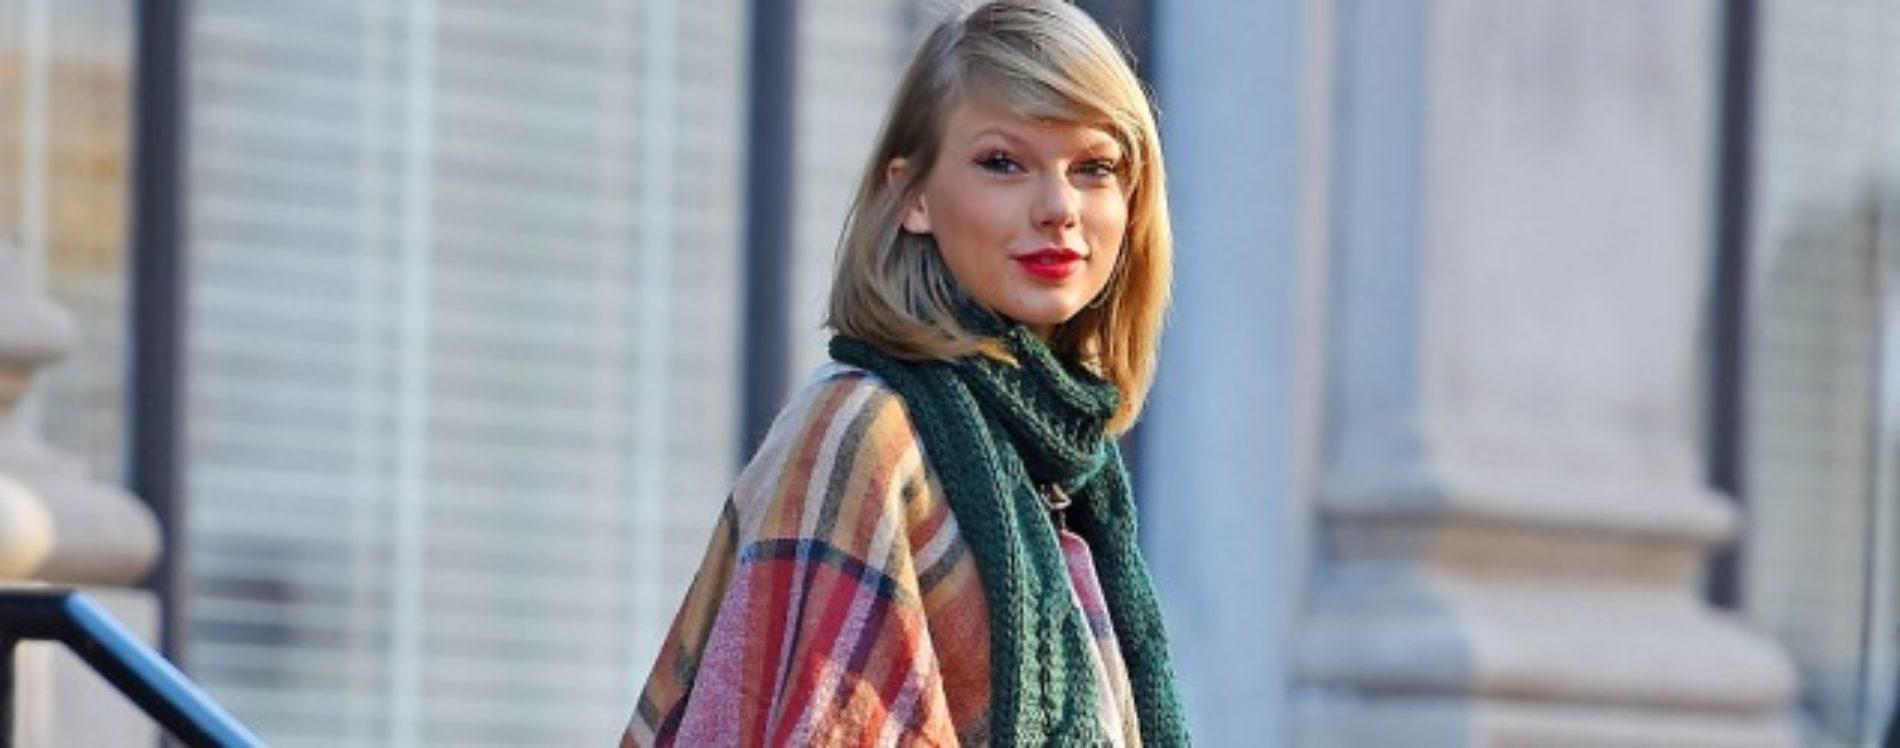 Taylor Swift Is the Highest Paid Woman in Music